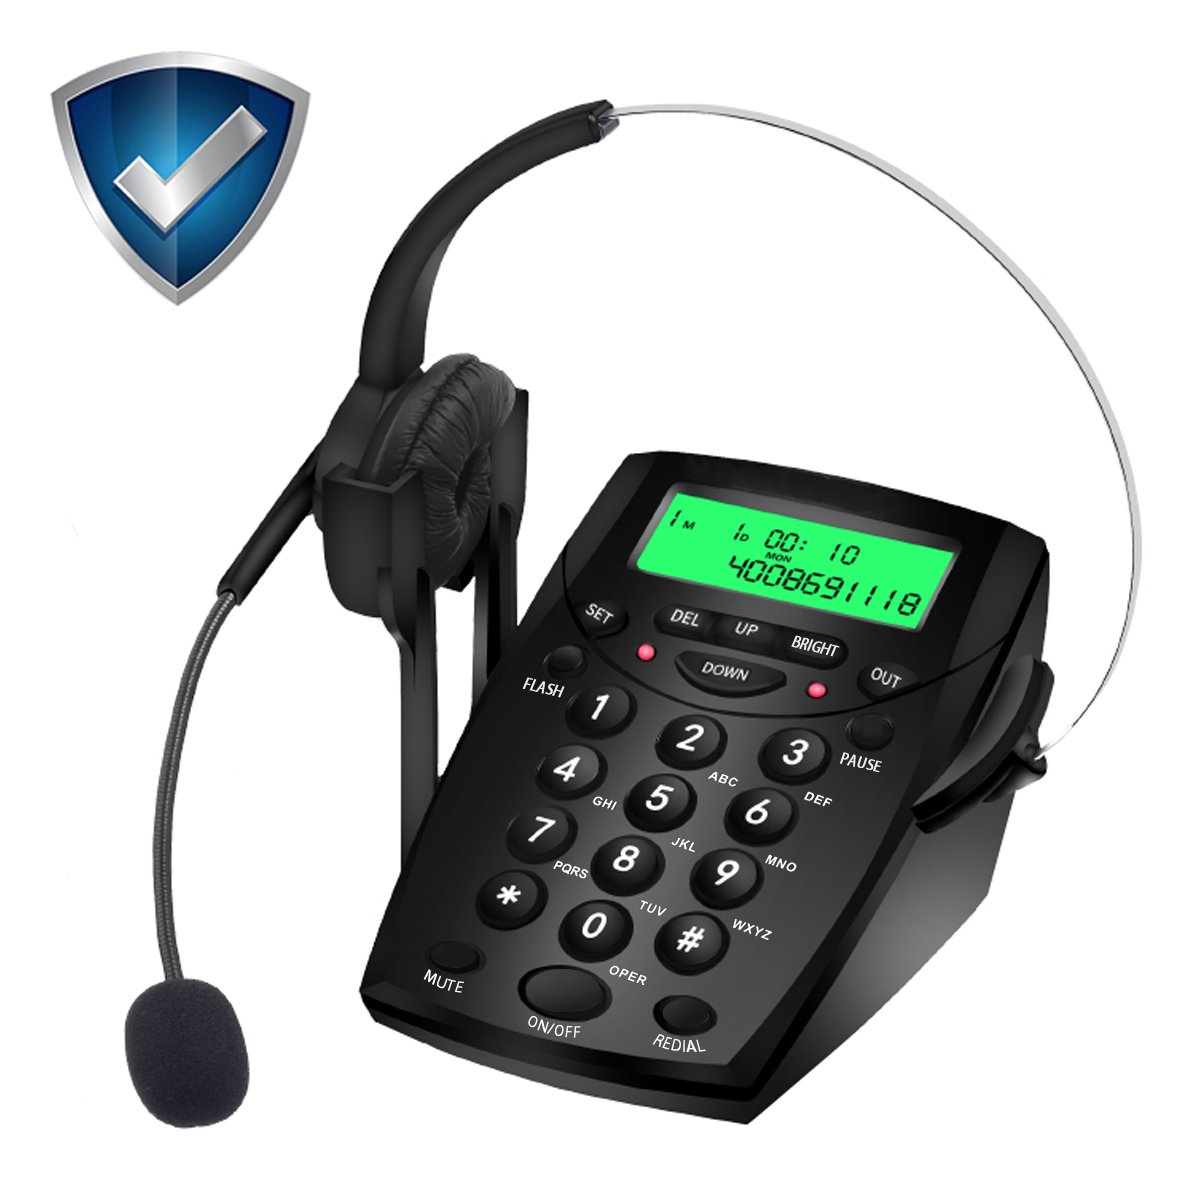 Wikoo Handsfree Telephone with Headset, Noise Cancelling Call Center Dialpad,Corded dialpad for Business and home, Comes with Noise Cancelling Headset, Very Useful and Convenient(Black)